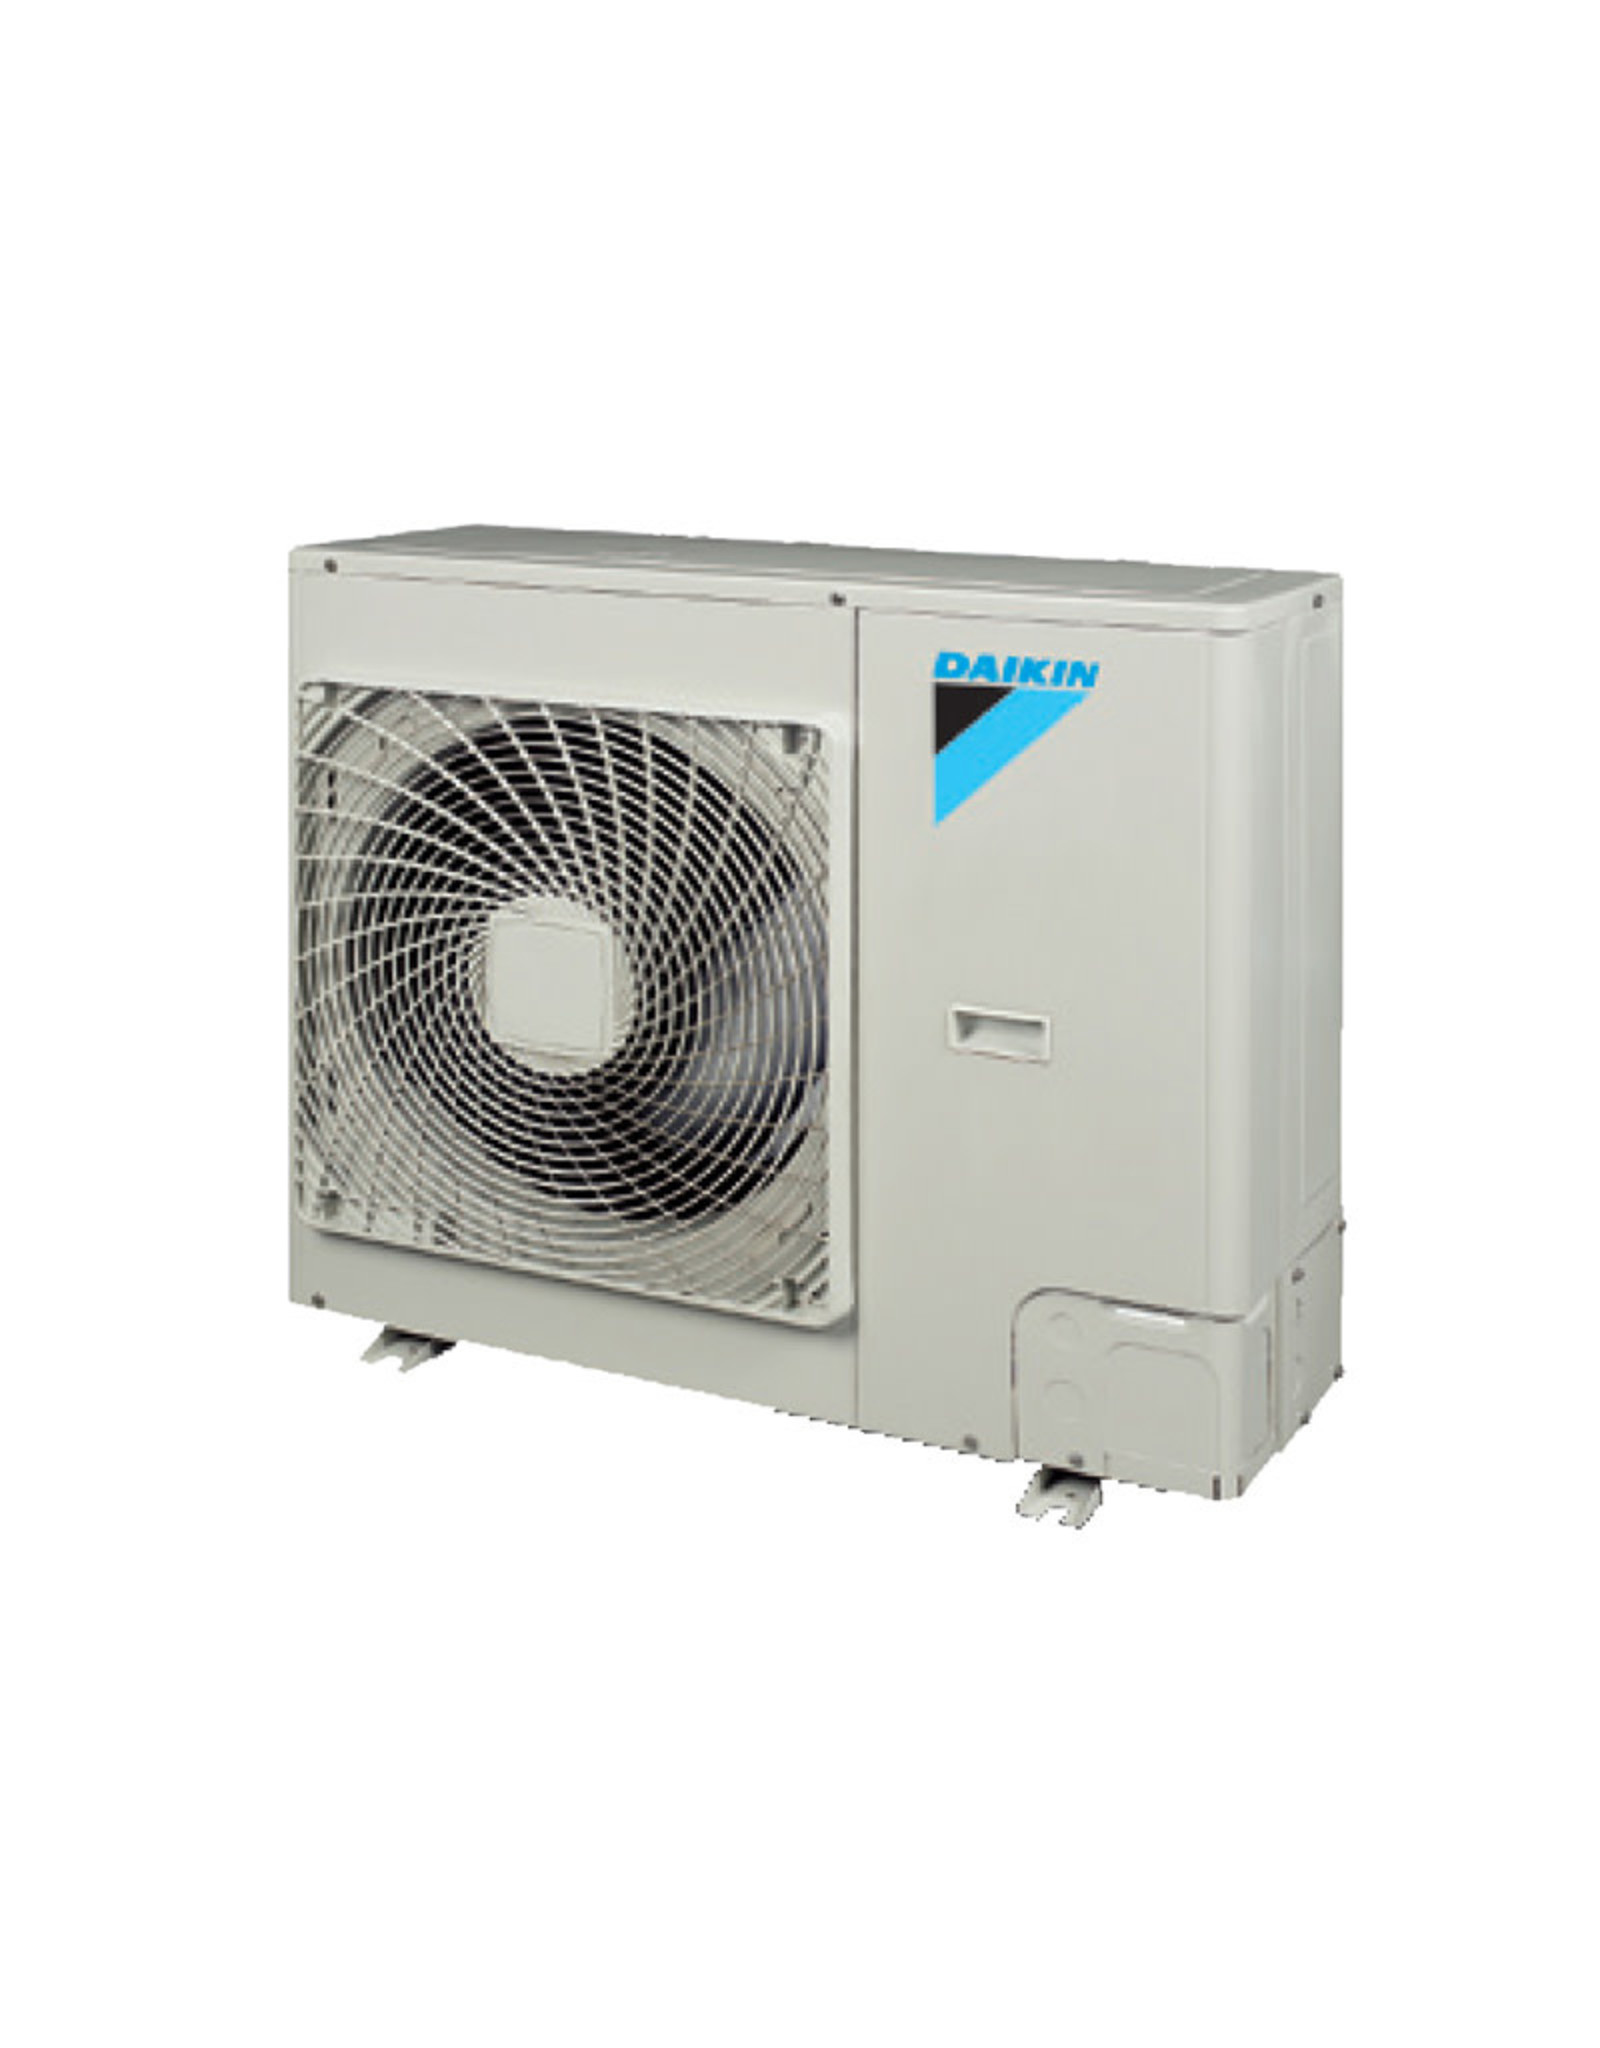 Daikin Applied Americas SkyAir FTXS Cooling up to 4 Zone Wall Mount Condenser Unit - 208/230 - 1ph